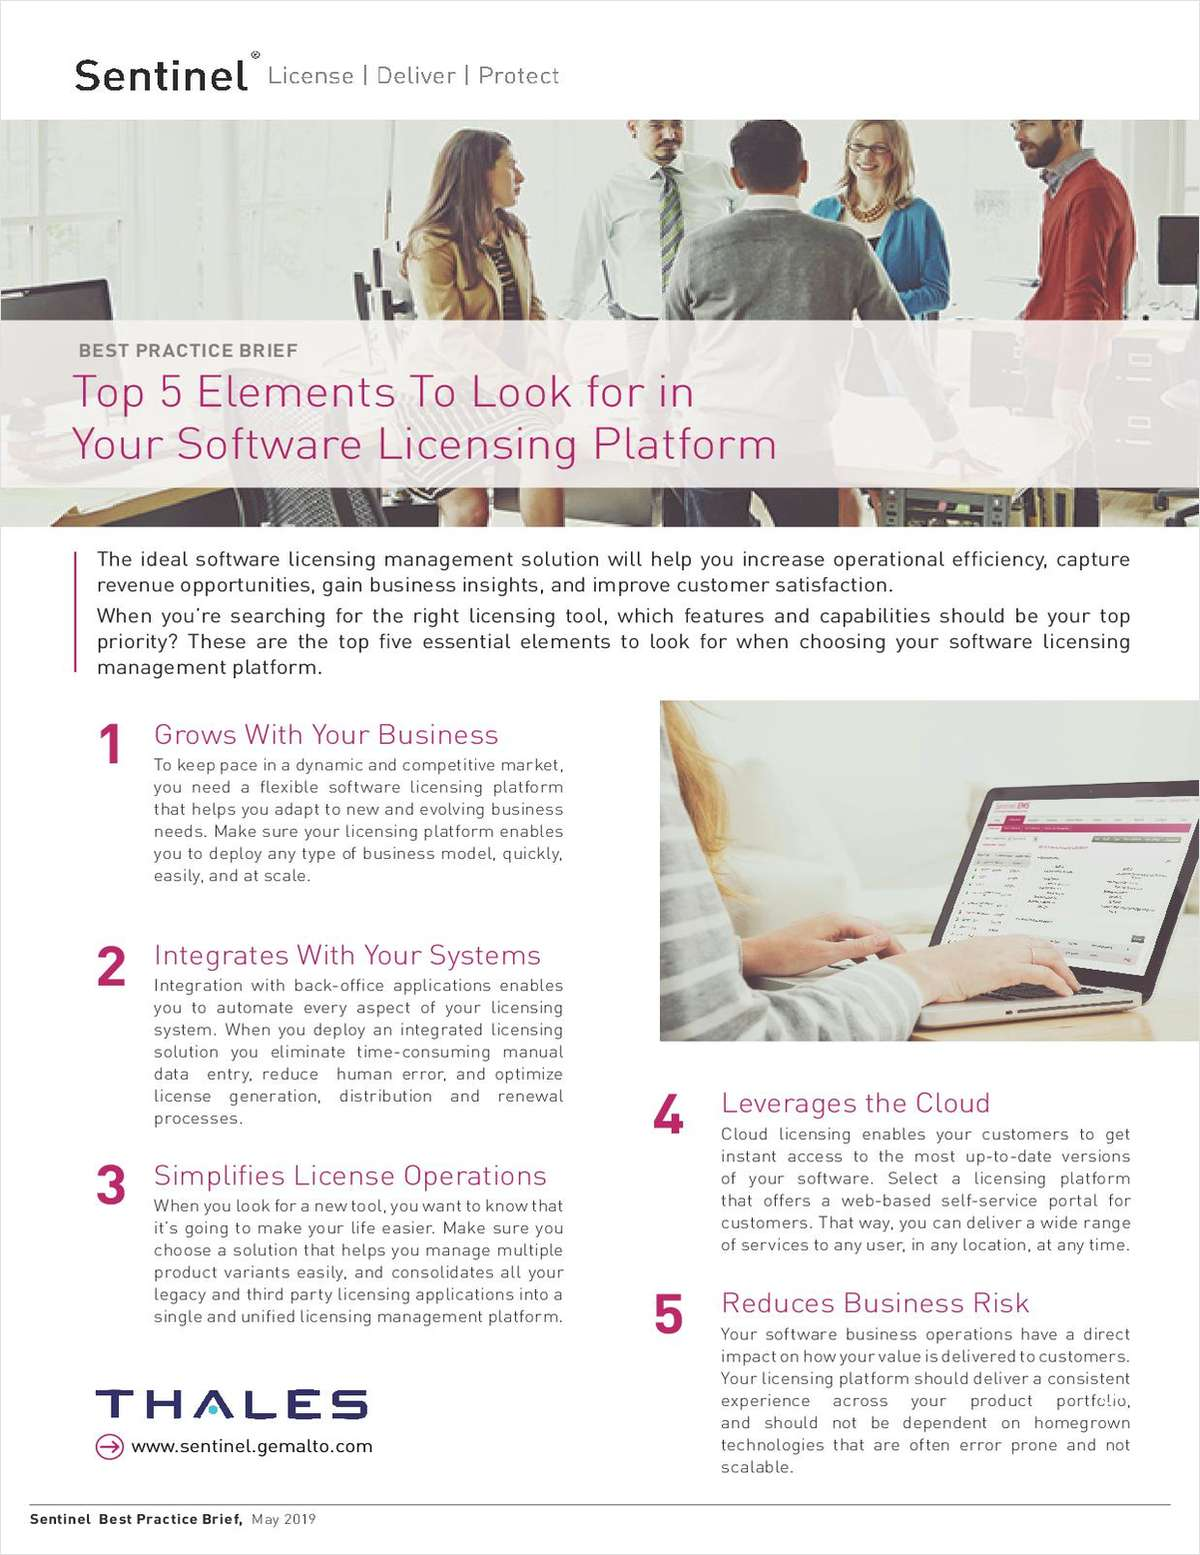 The Top 5 Elements To Look for in Your Software Licensing Platform